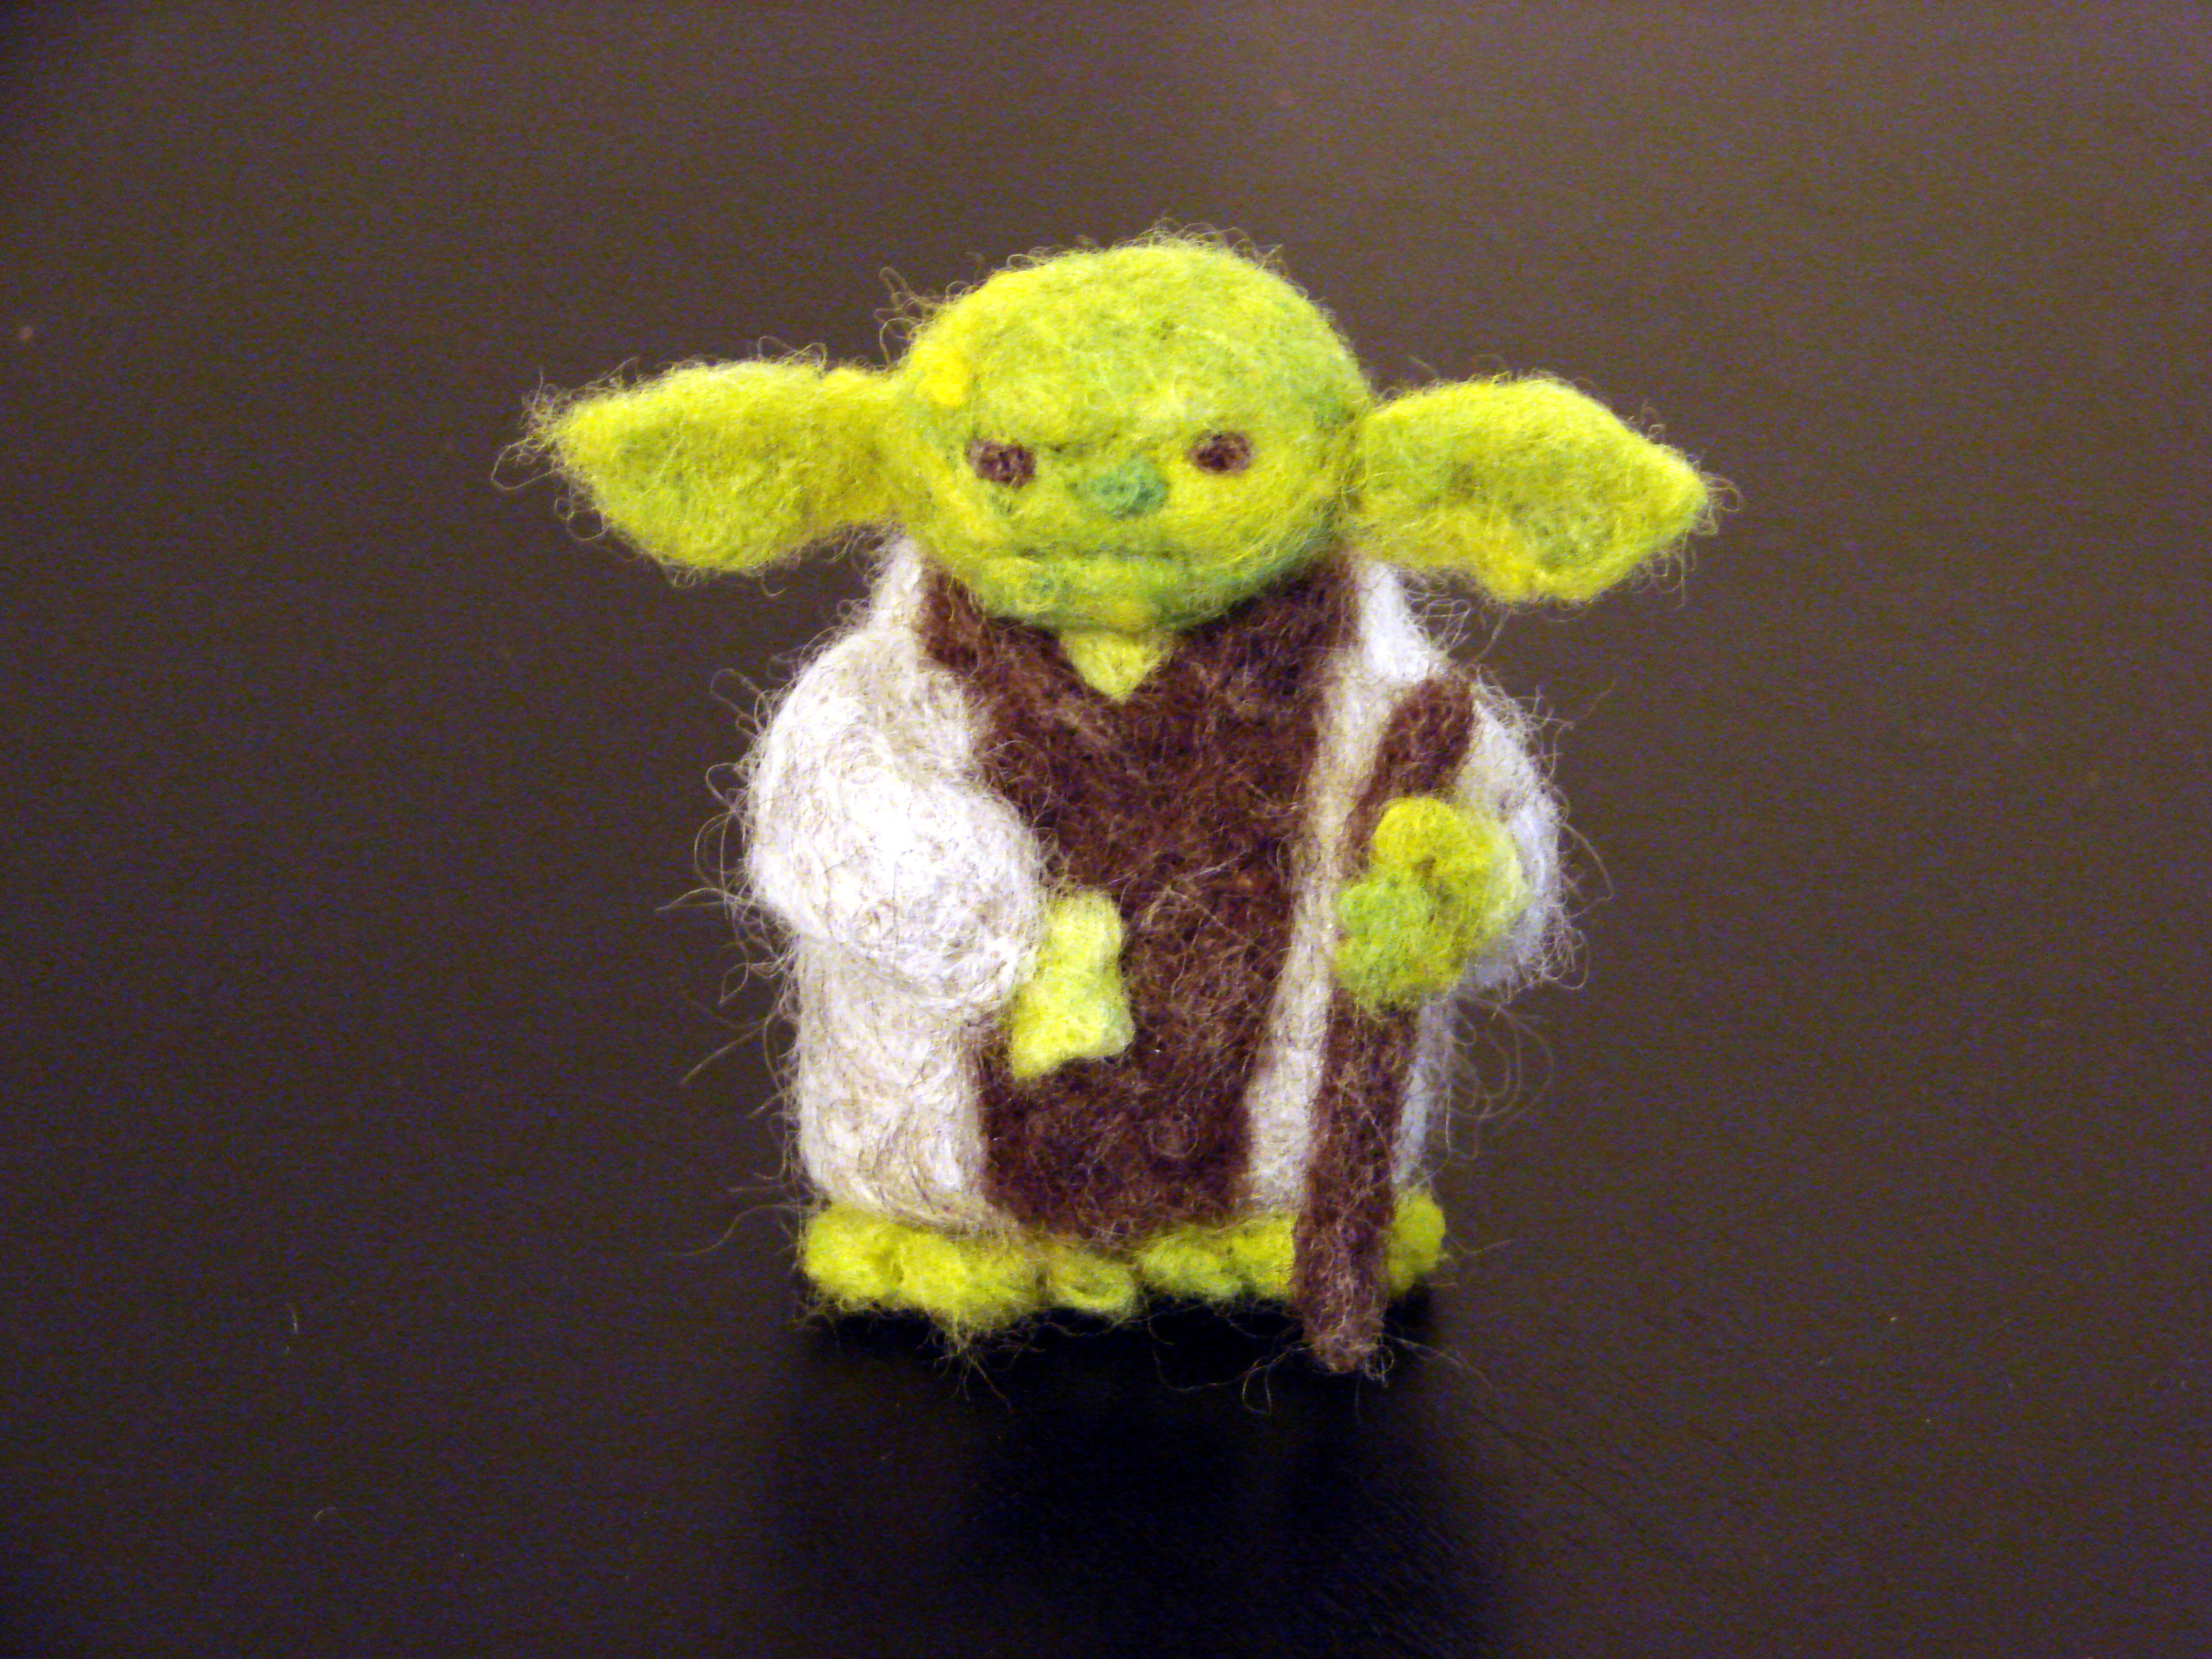 Make Me in Wool, You Will!